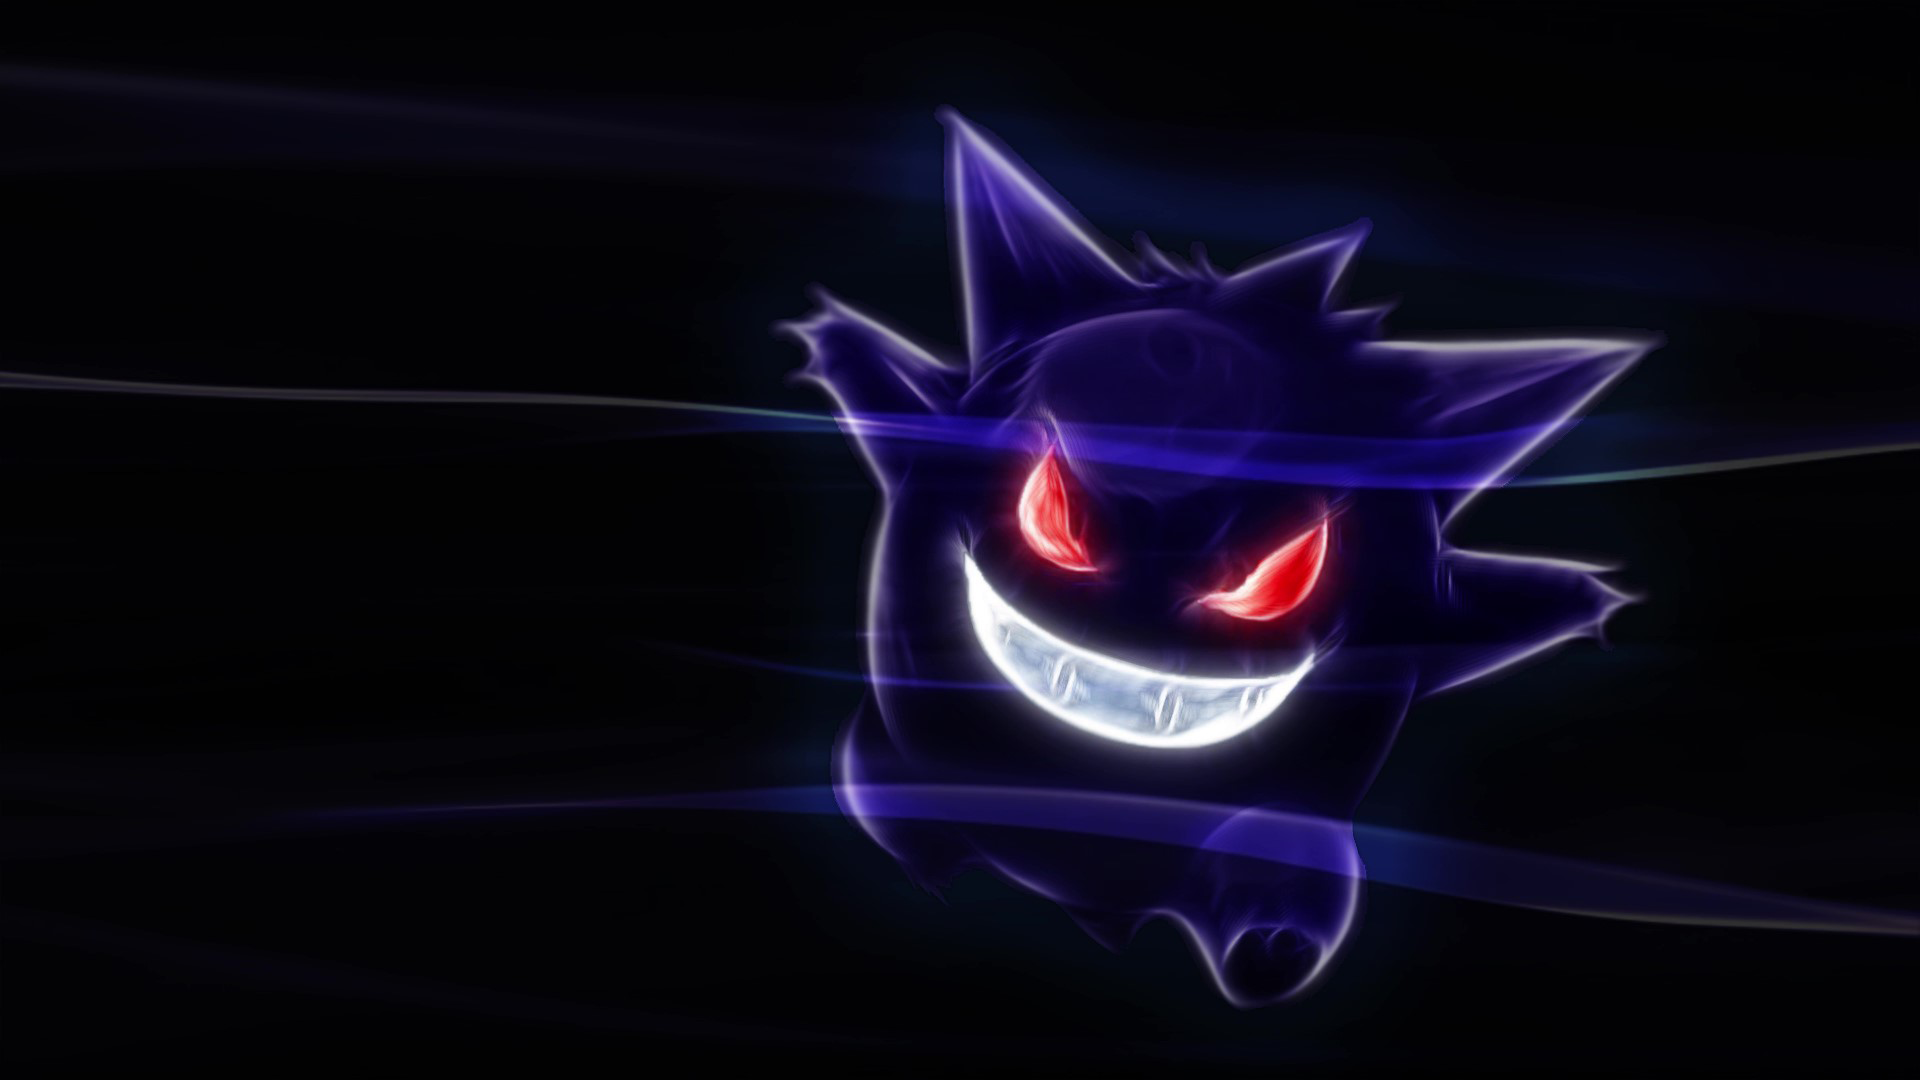 Gengar Live Wallpaper [1920 x 1080] in 2020 Anime